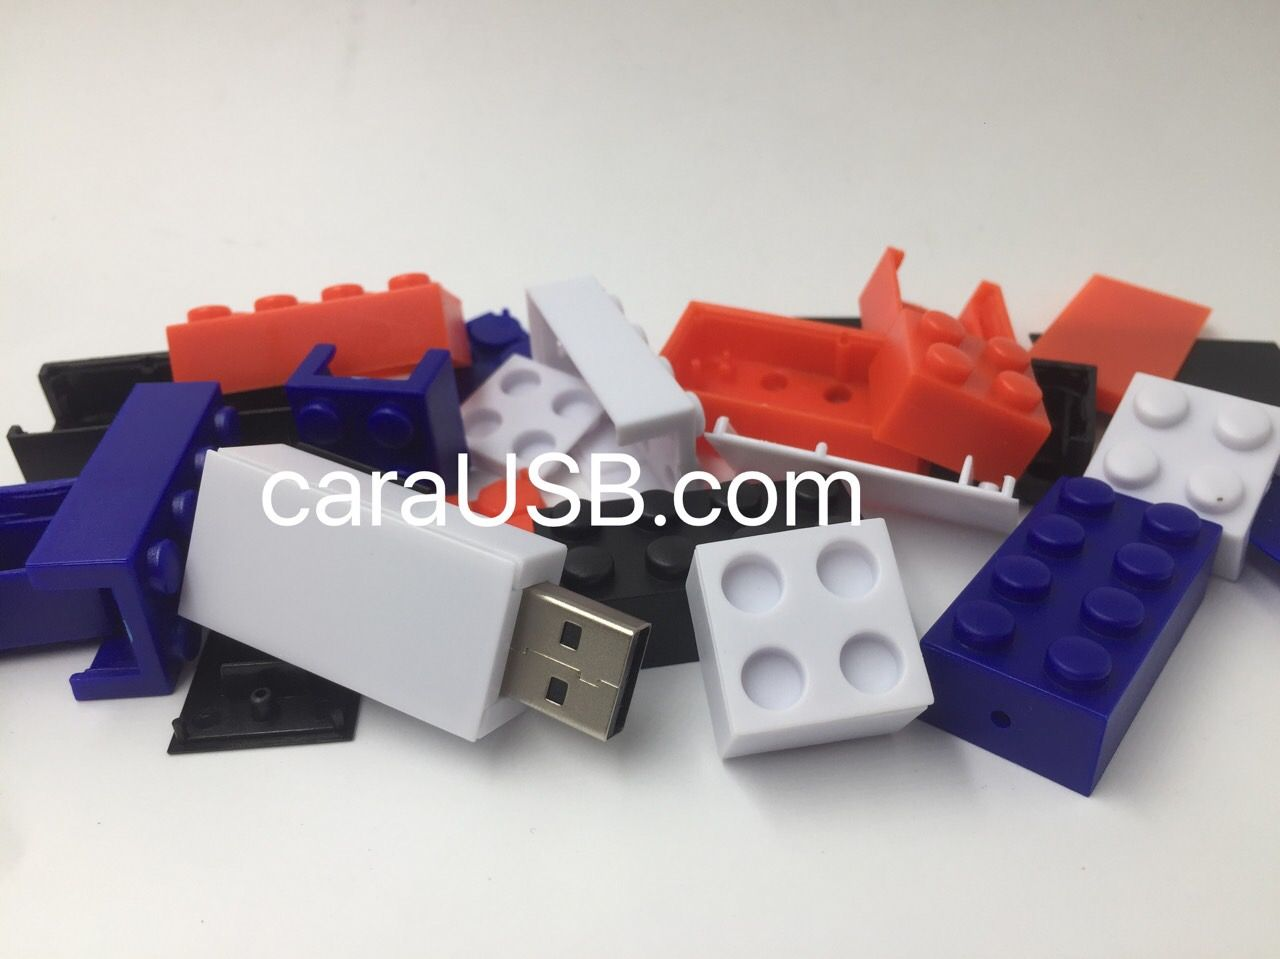 Lego Usb Sticks 1gb 2gb 4gb Logo 8gb 16gb 32gb 64gb Www Carausb Com Whatsapp 8615014148476 Skype May Yuan China Email May Yuan C Usb Stick Usb Custom Usb